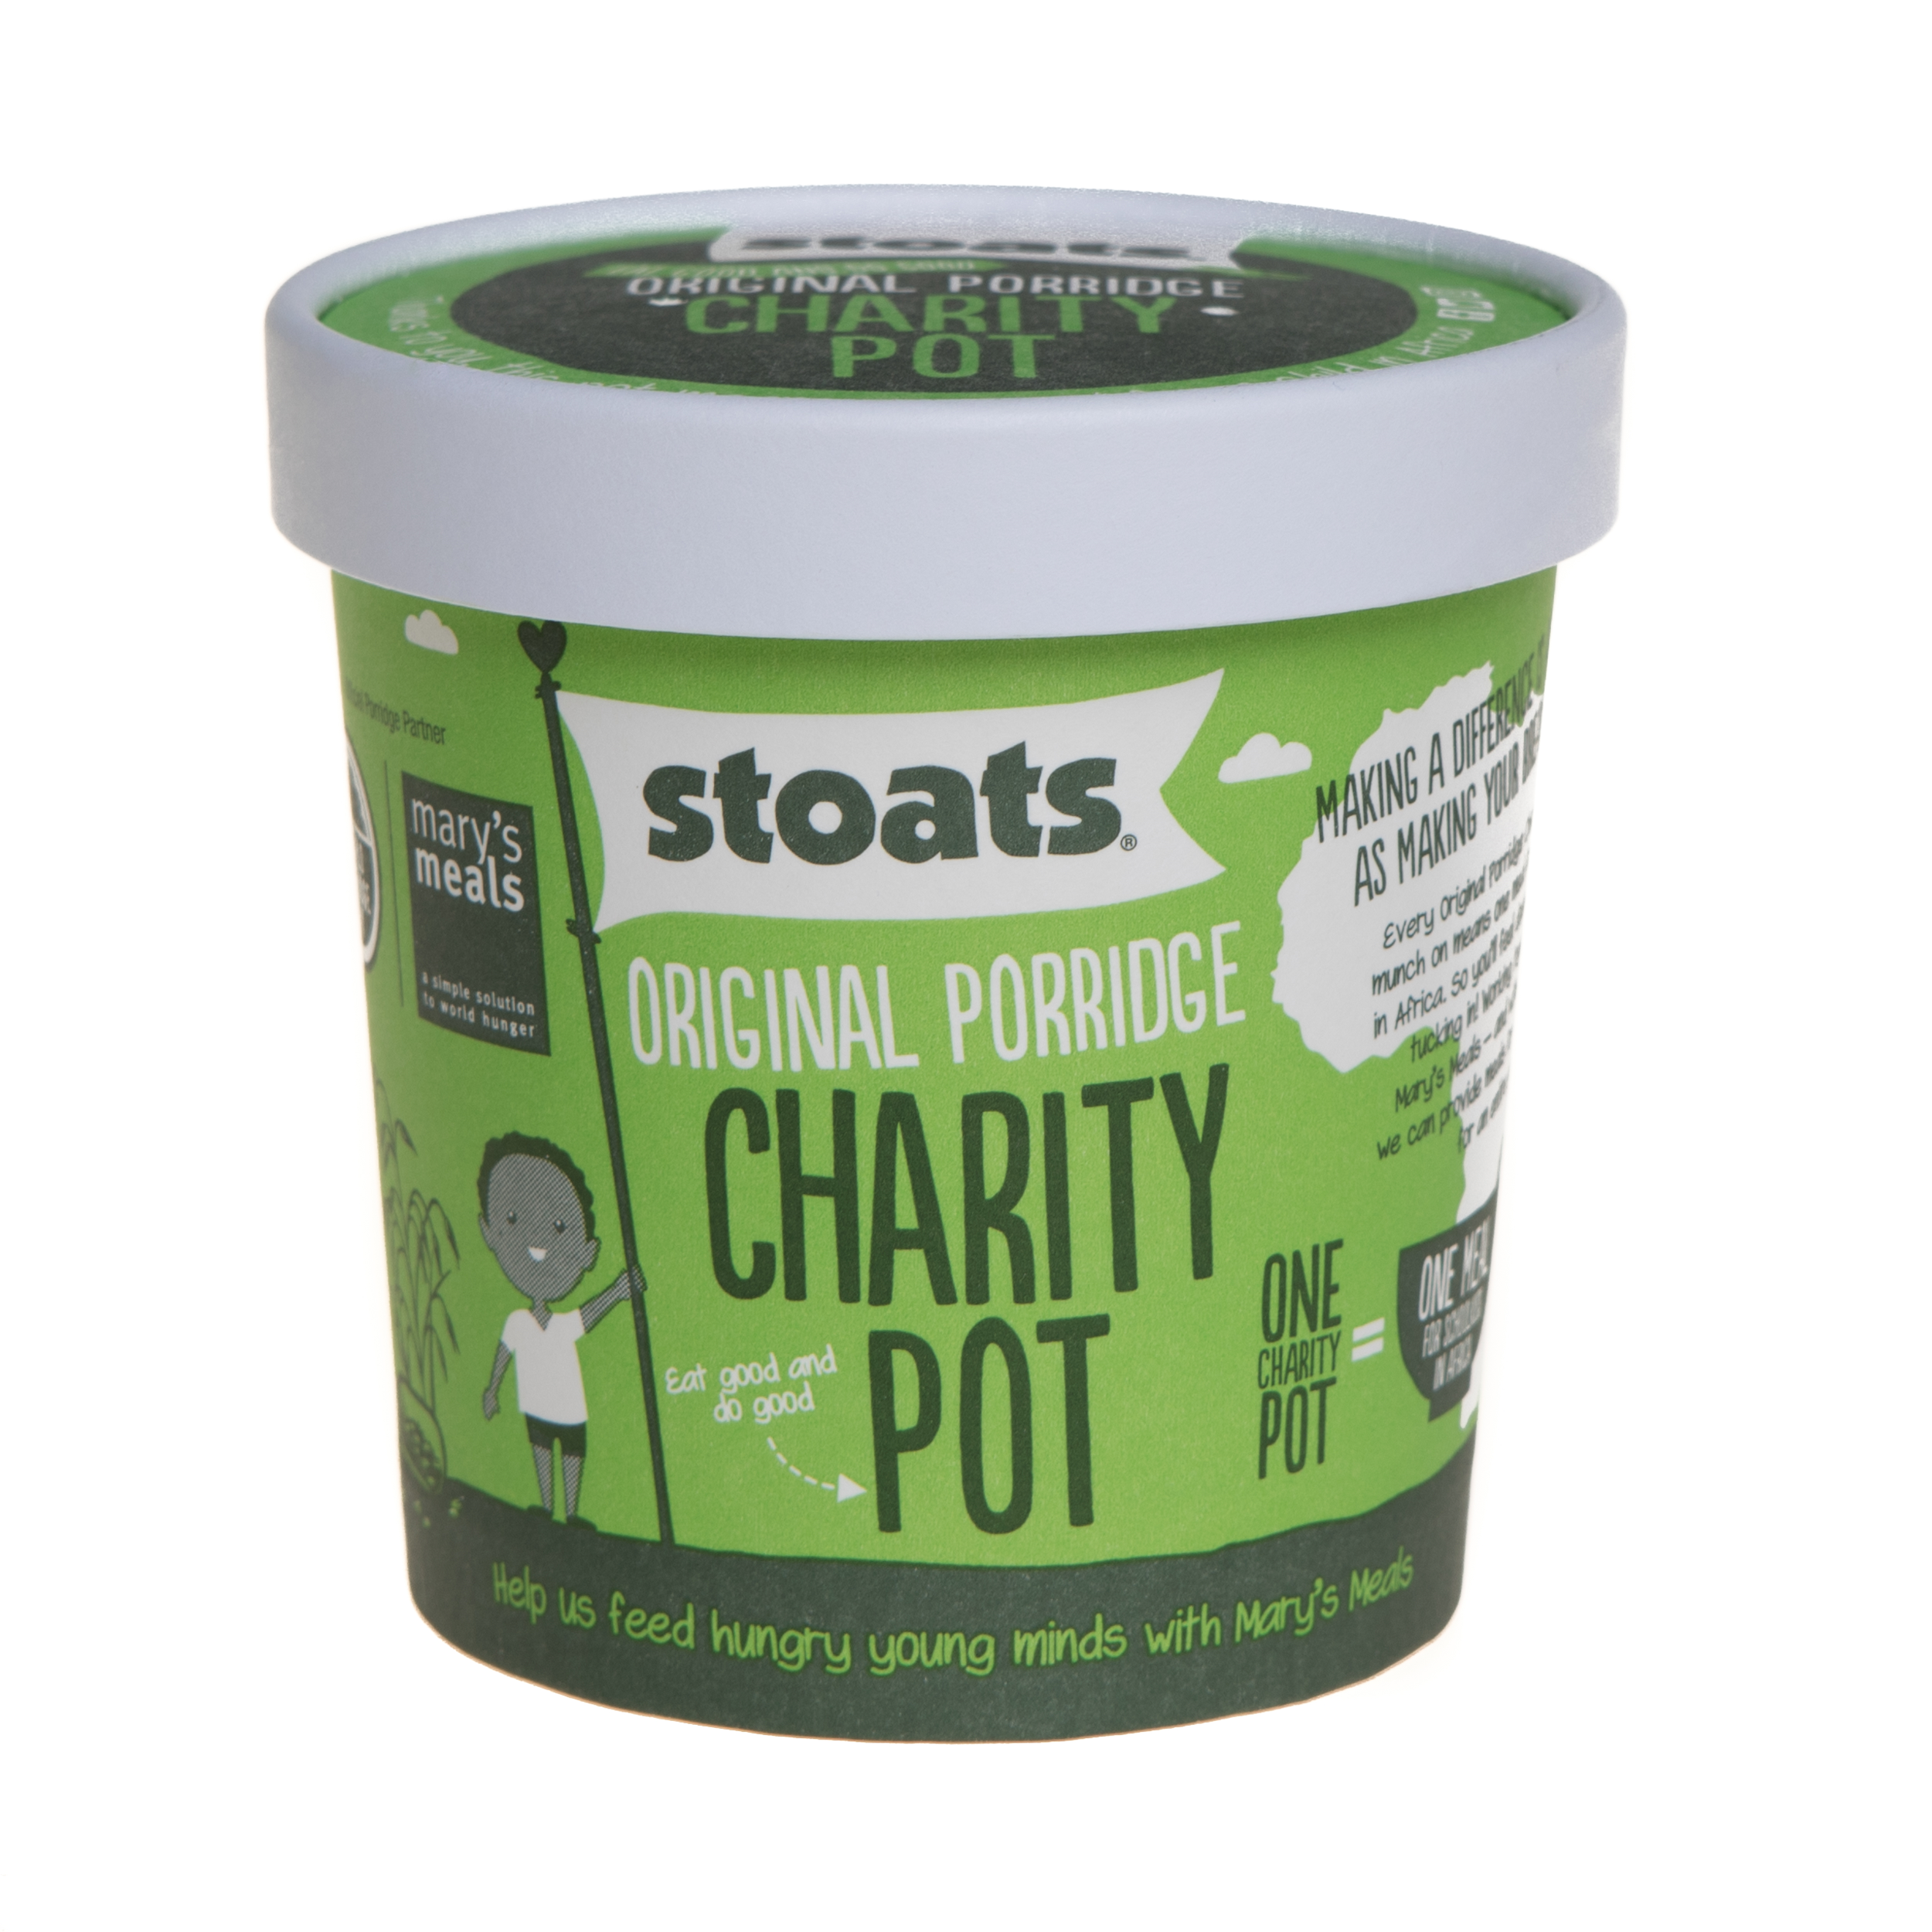 Stoats and Mary's Meals team up for fundraising